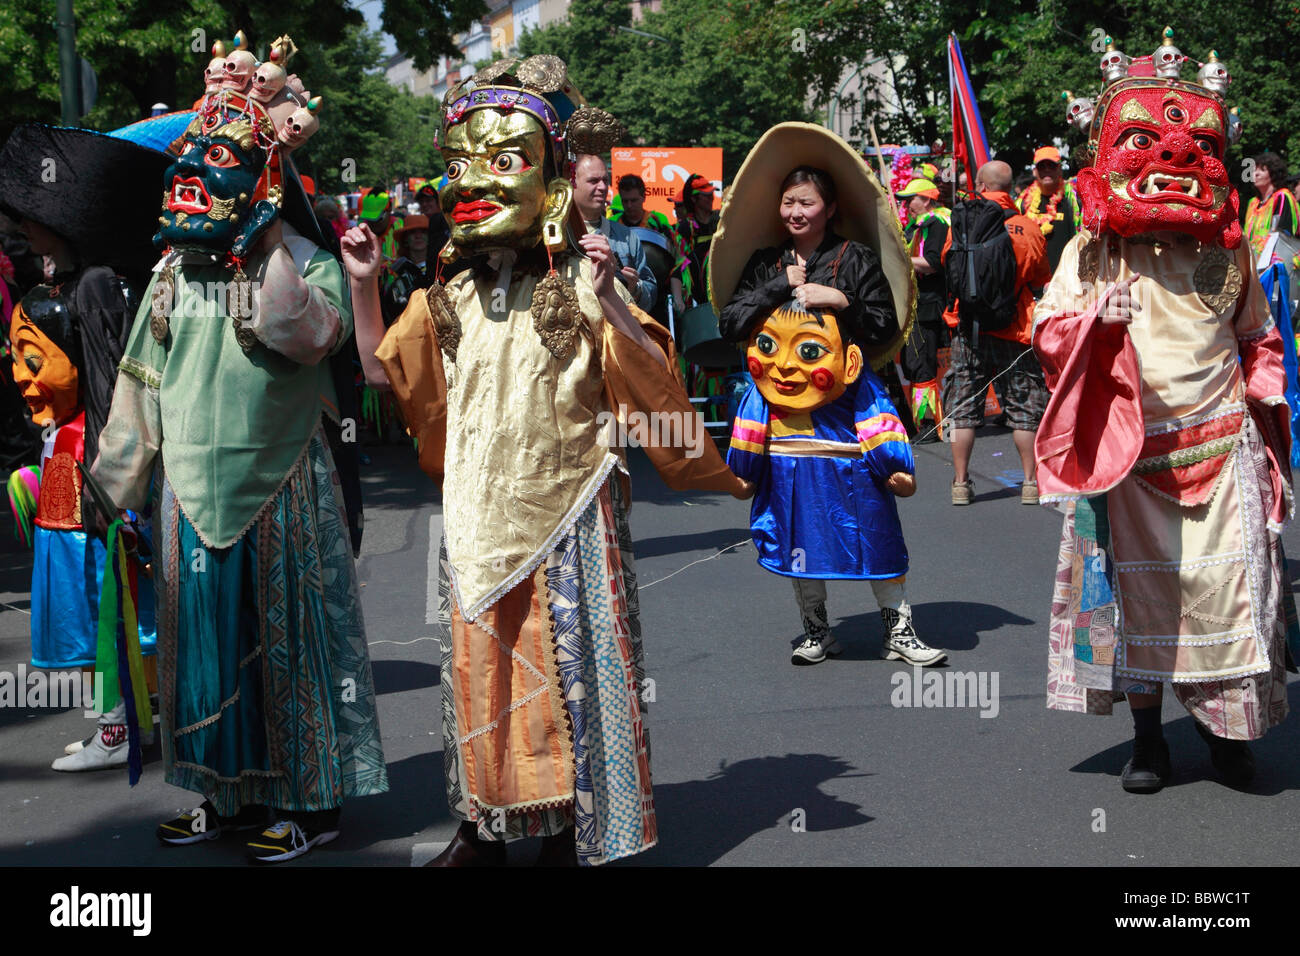 Allemagne Berlin Carnaval des Cultures mongols portant des masques Photo Stock